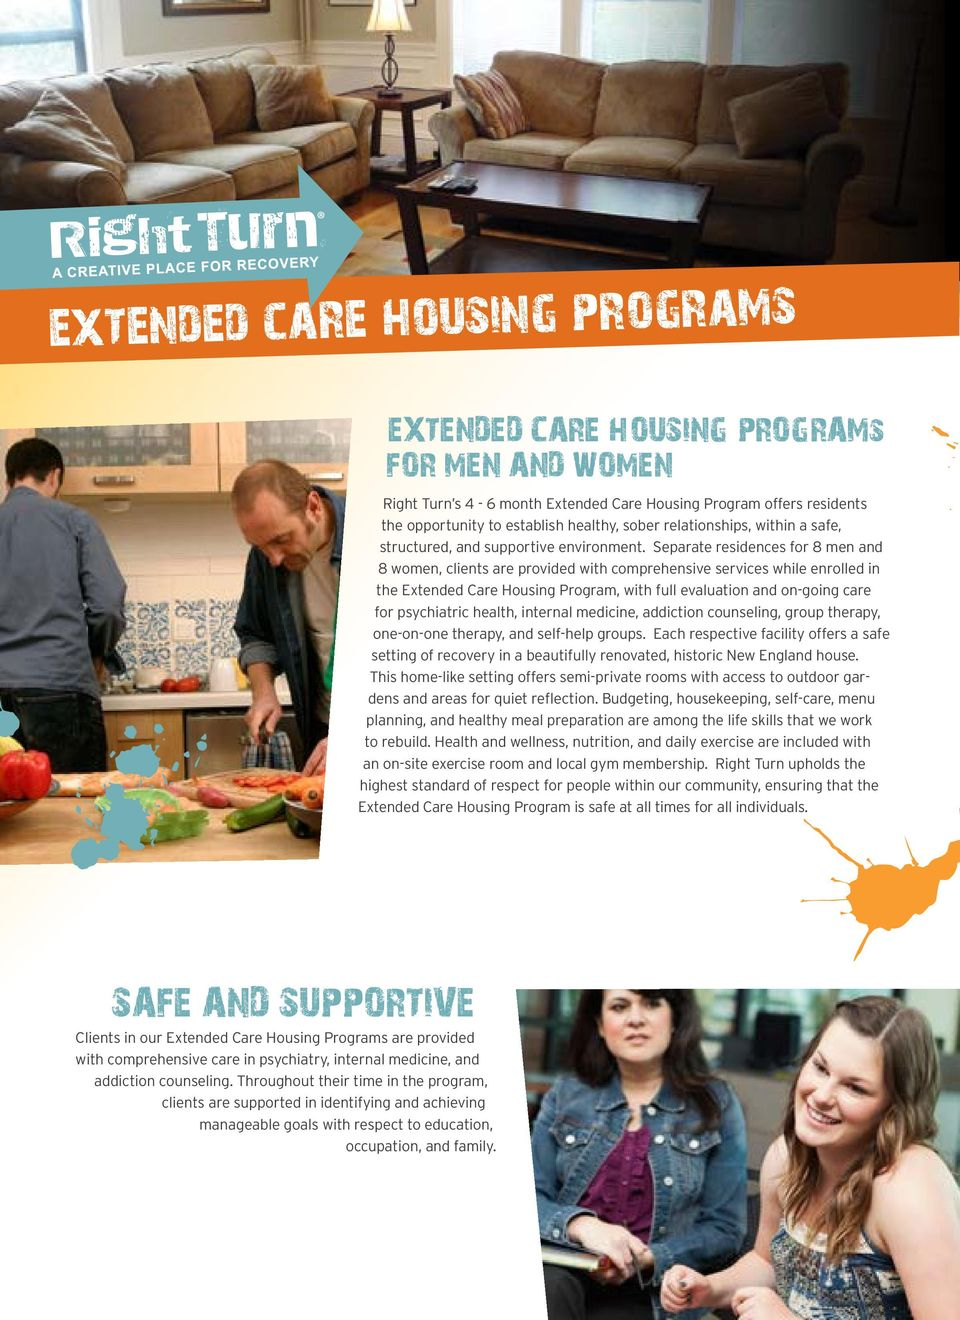 Separate residences for 8 men and 8 women, clients are provided with comprehensive services while enrolled in the Extended Care Housing Program, with full evaluation and on-going care for psychiatric